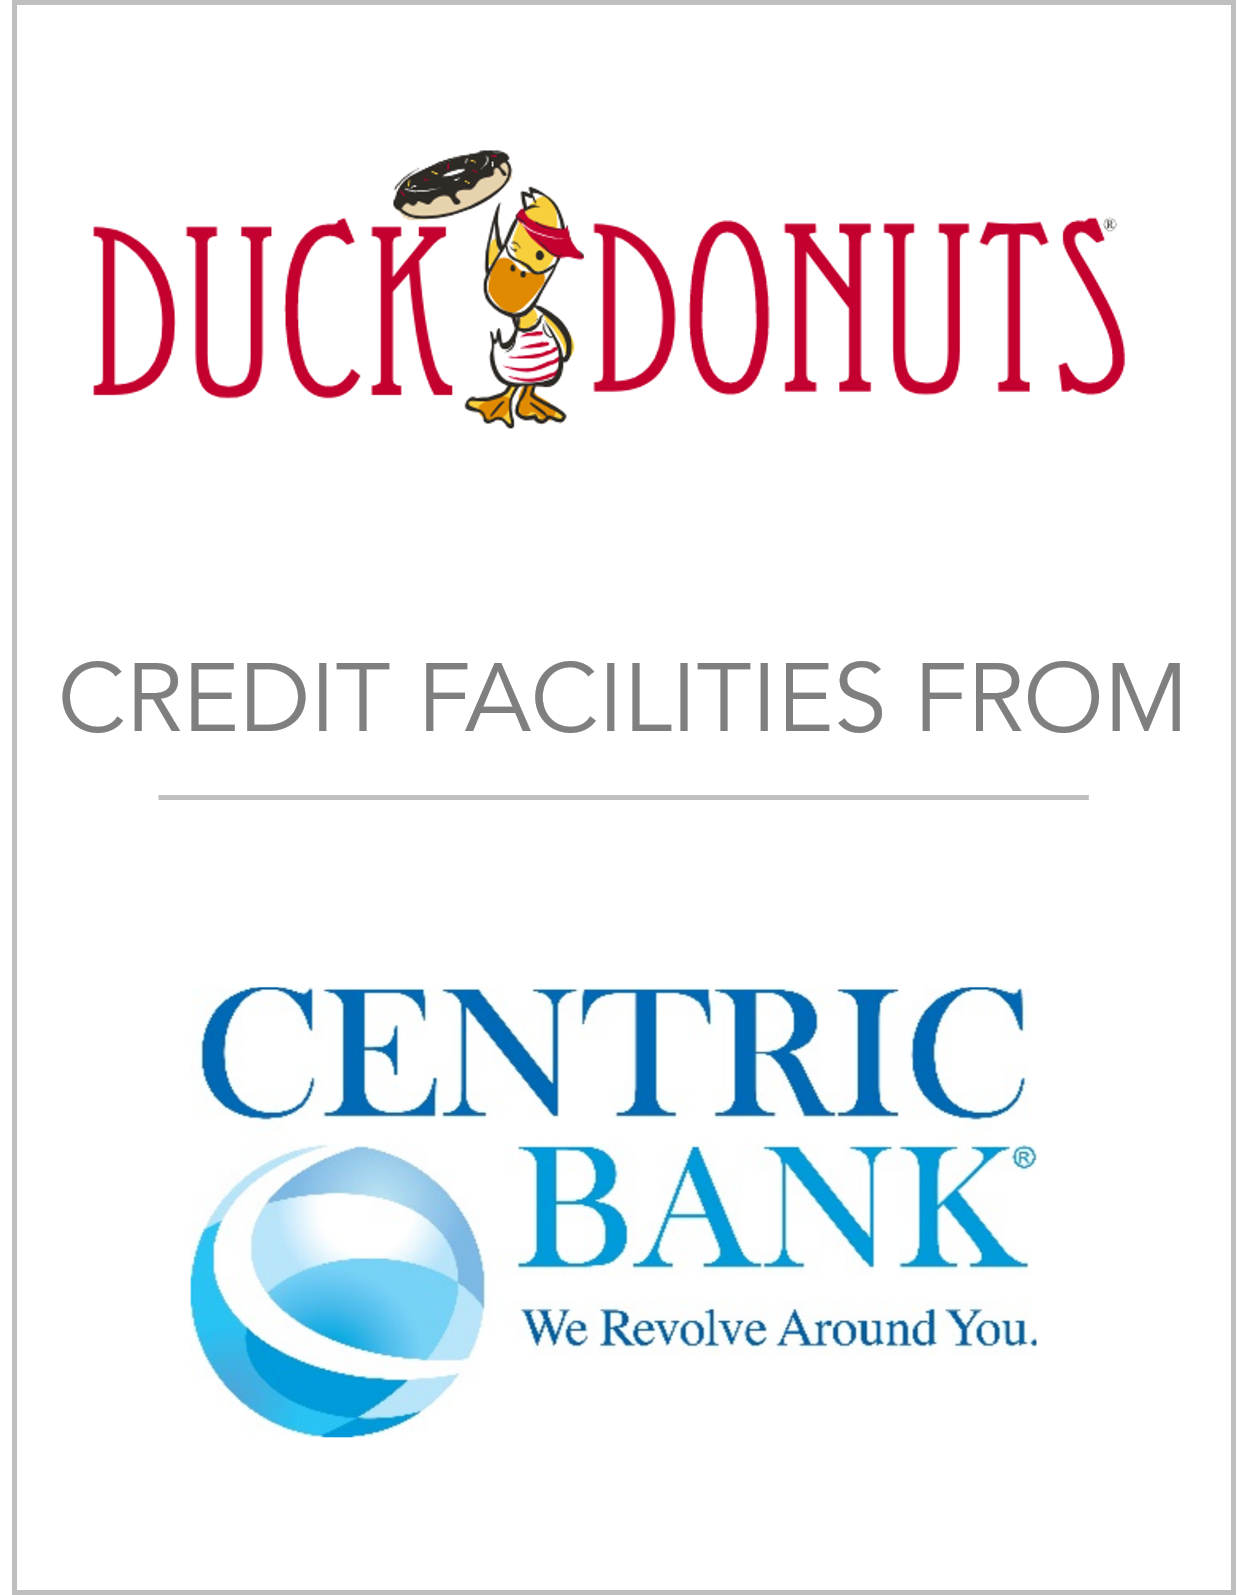 Fairmount Partners Assists Duck Donu